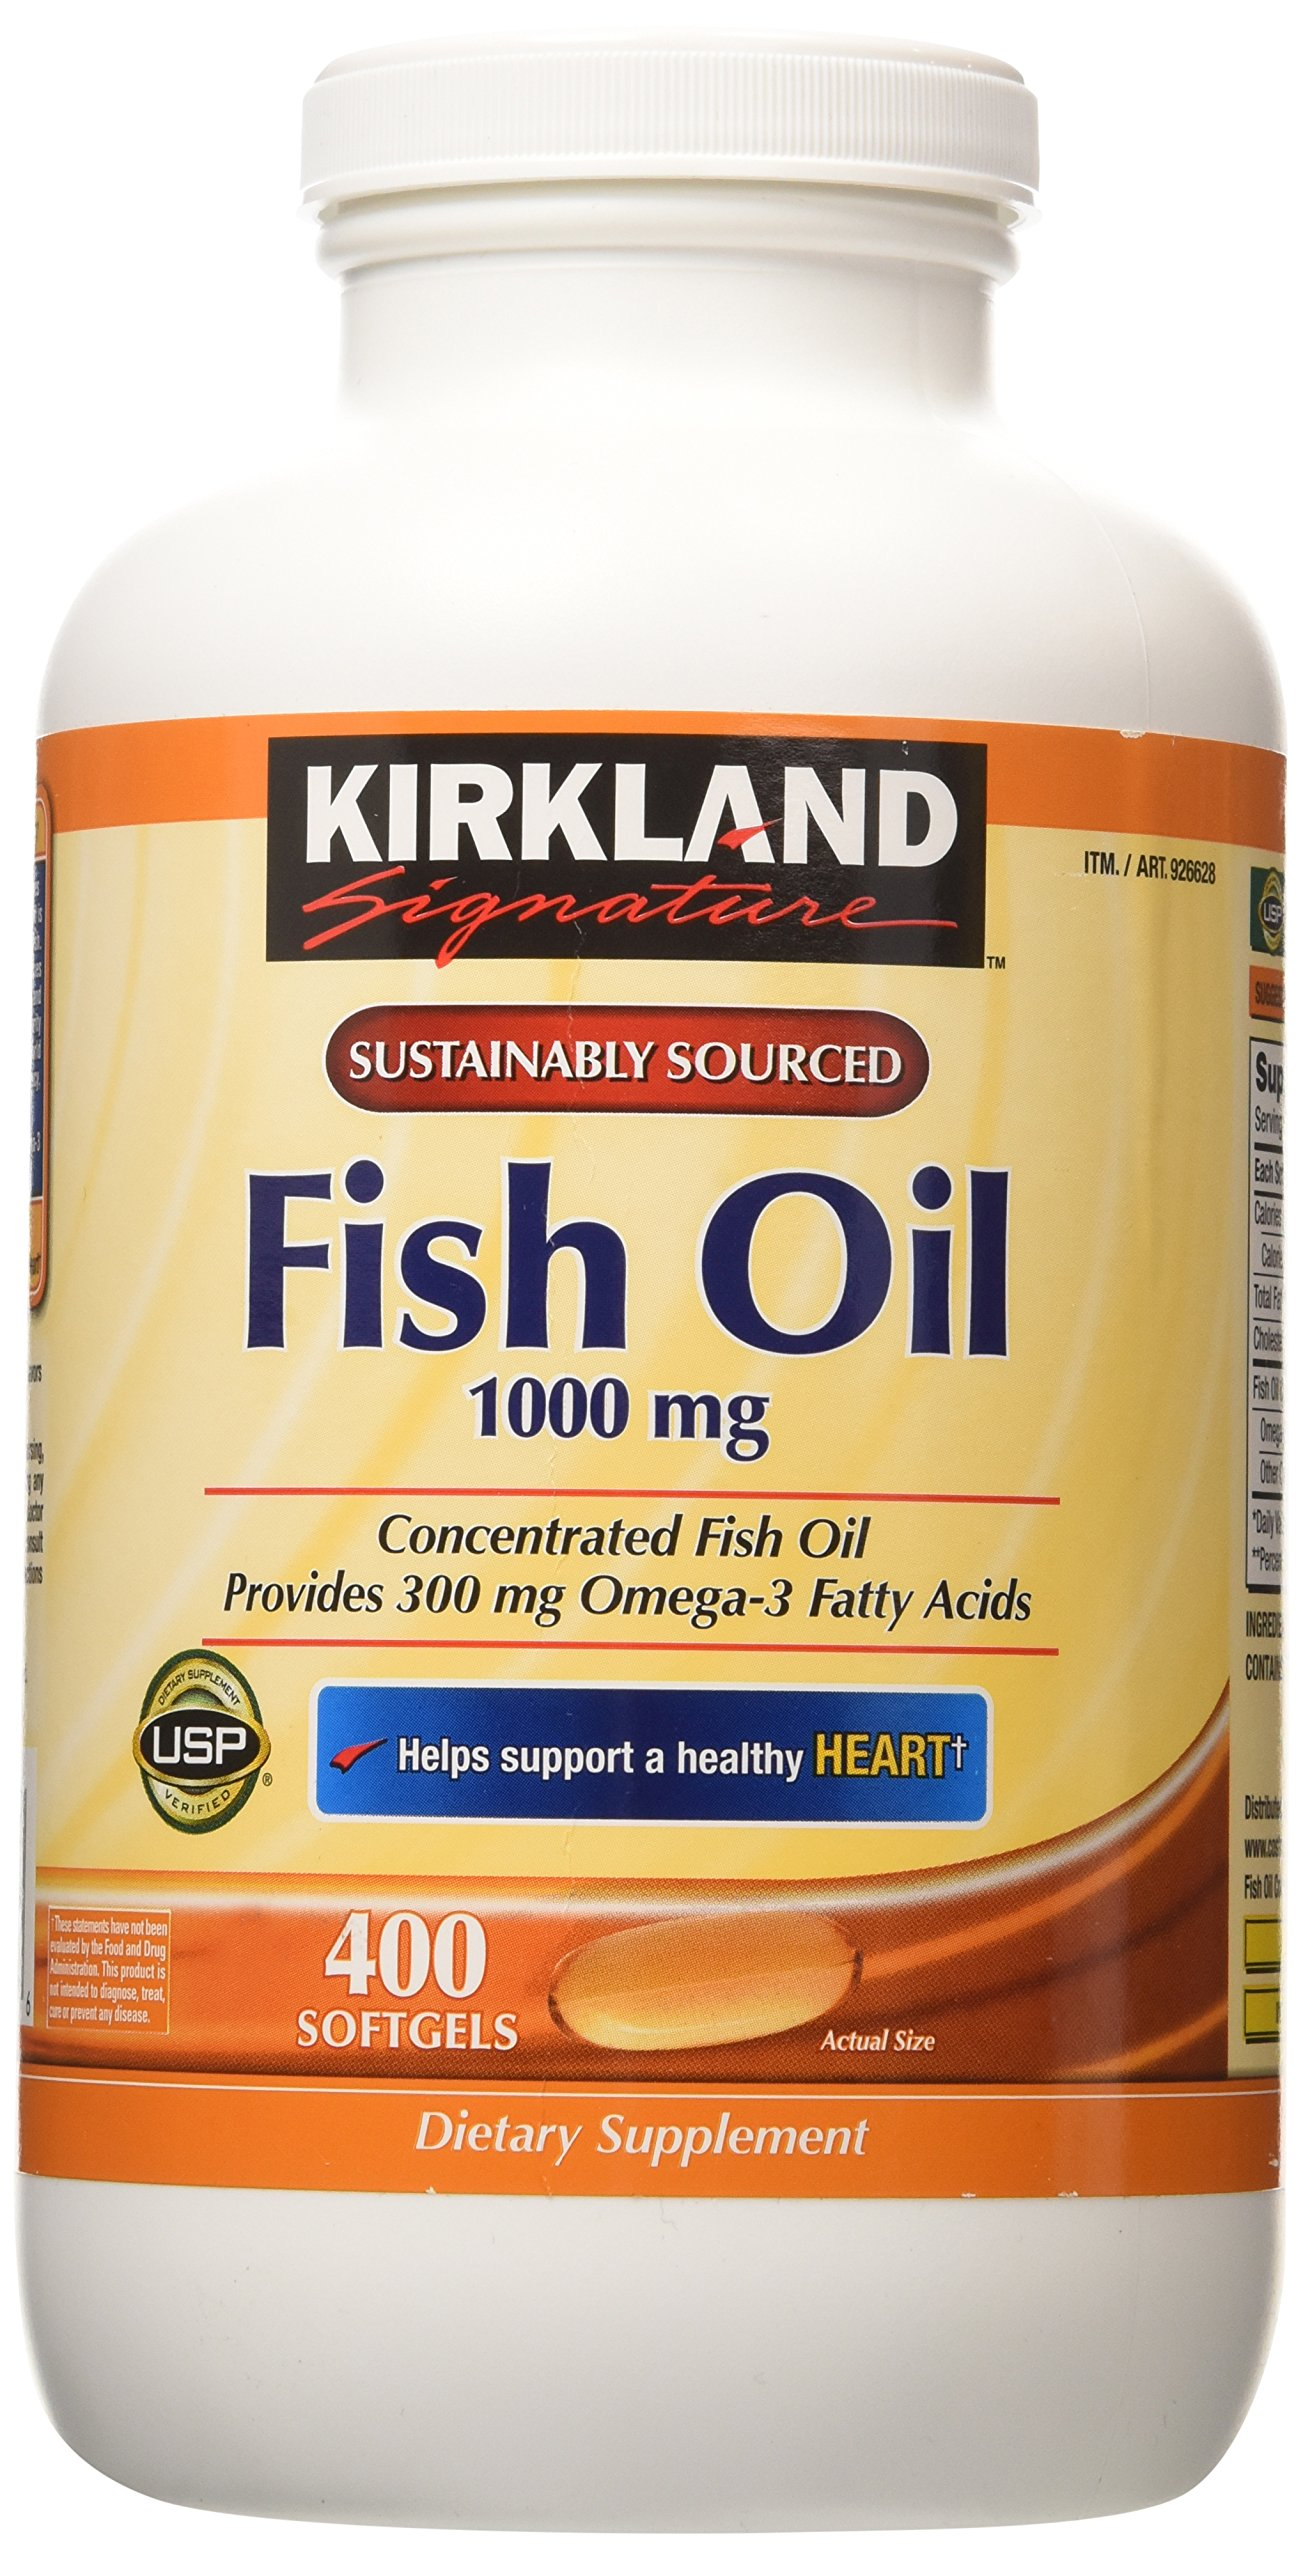 omega kirkland fish oil fatty acids signature softgels 1000mg supplement 1000 mg concentrate vitamin supplements softgel capsules amazon tablets oils